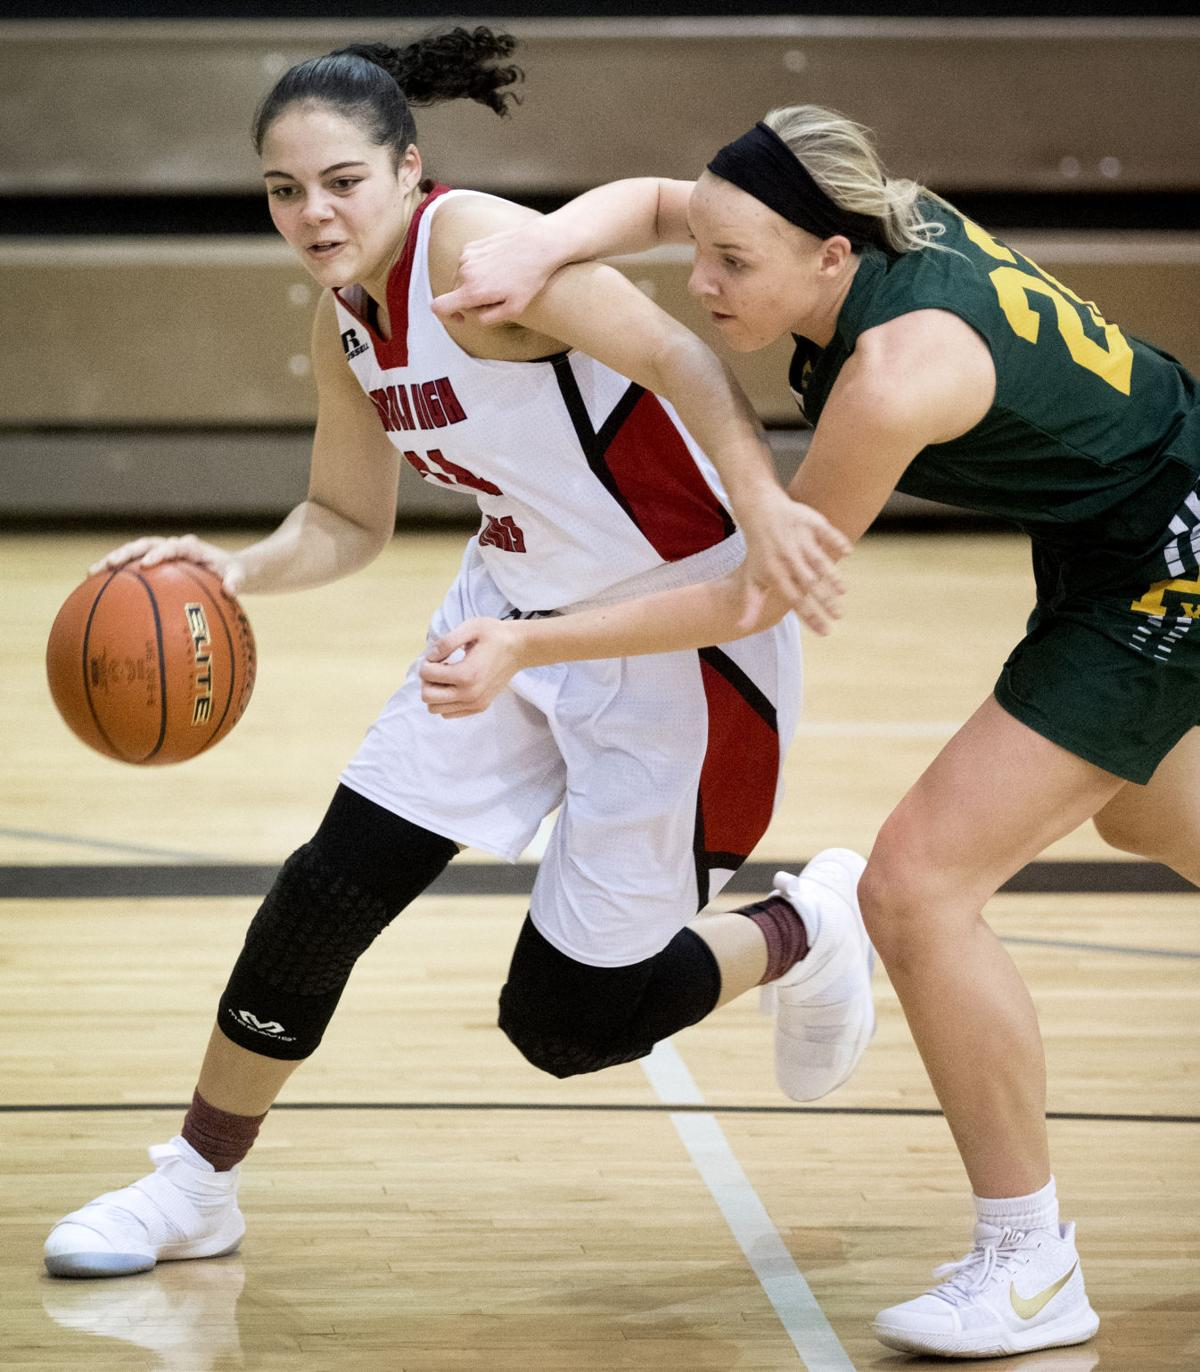 Pius X vs. Lincoln High, girls hoops, 1/12/18